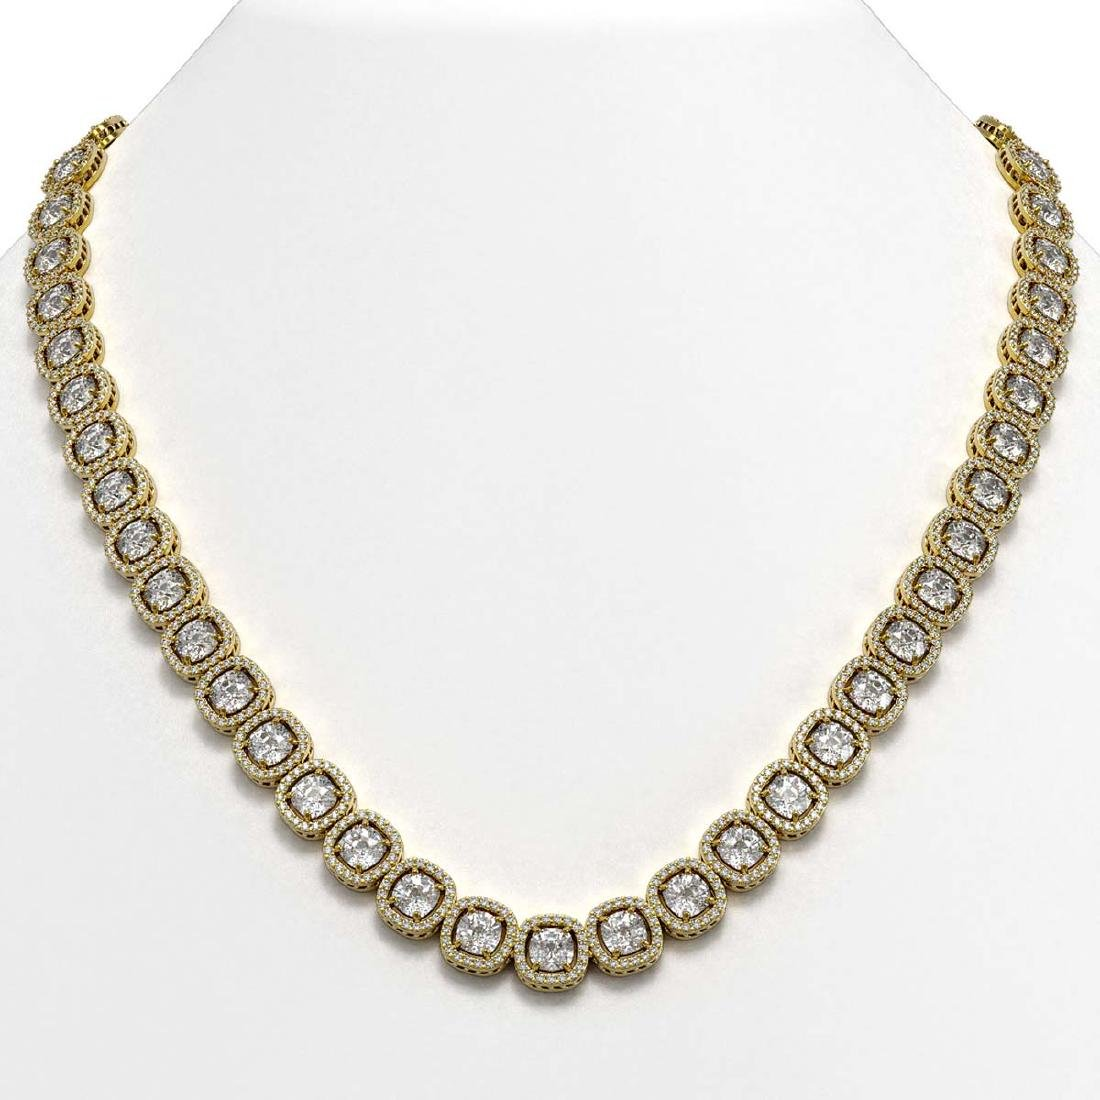 37.60 CTW Cushion Diamond Designer Necklace 18K Yellow